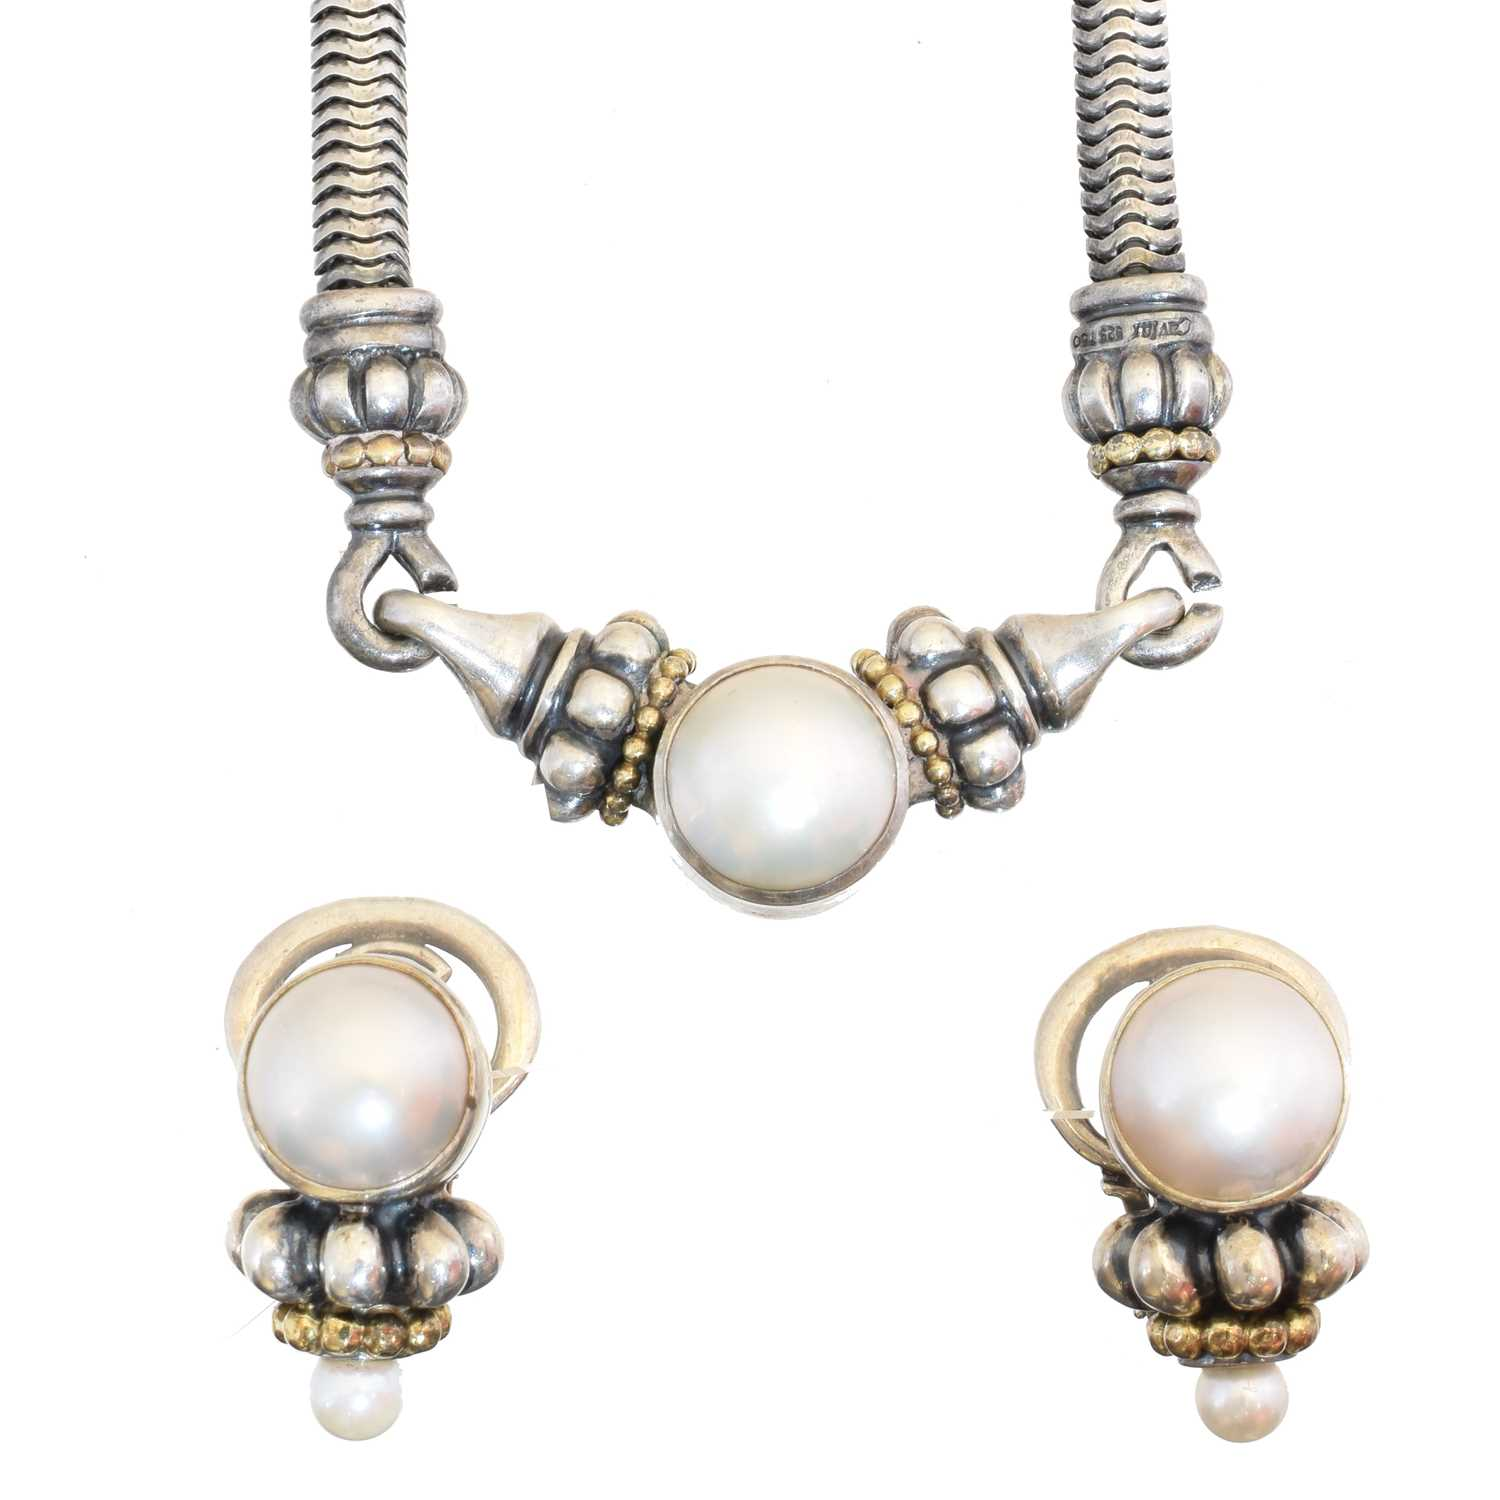 Lot 12 - A suite of jewellery by Lagos